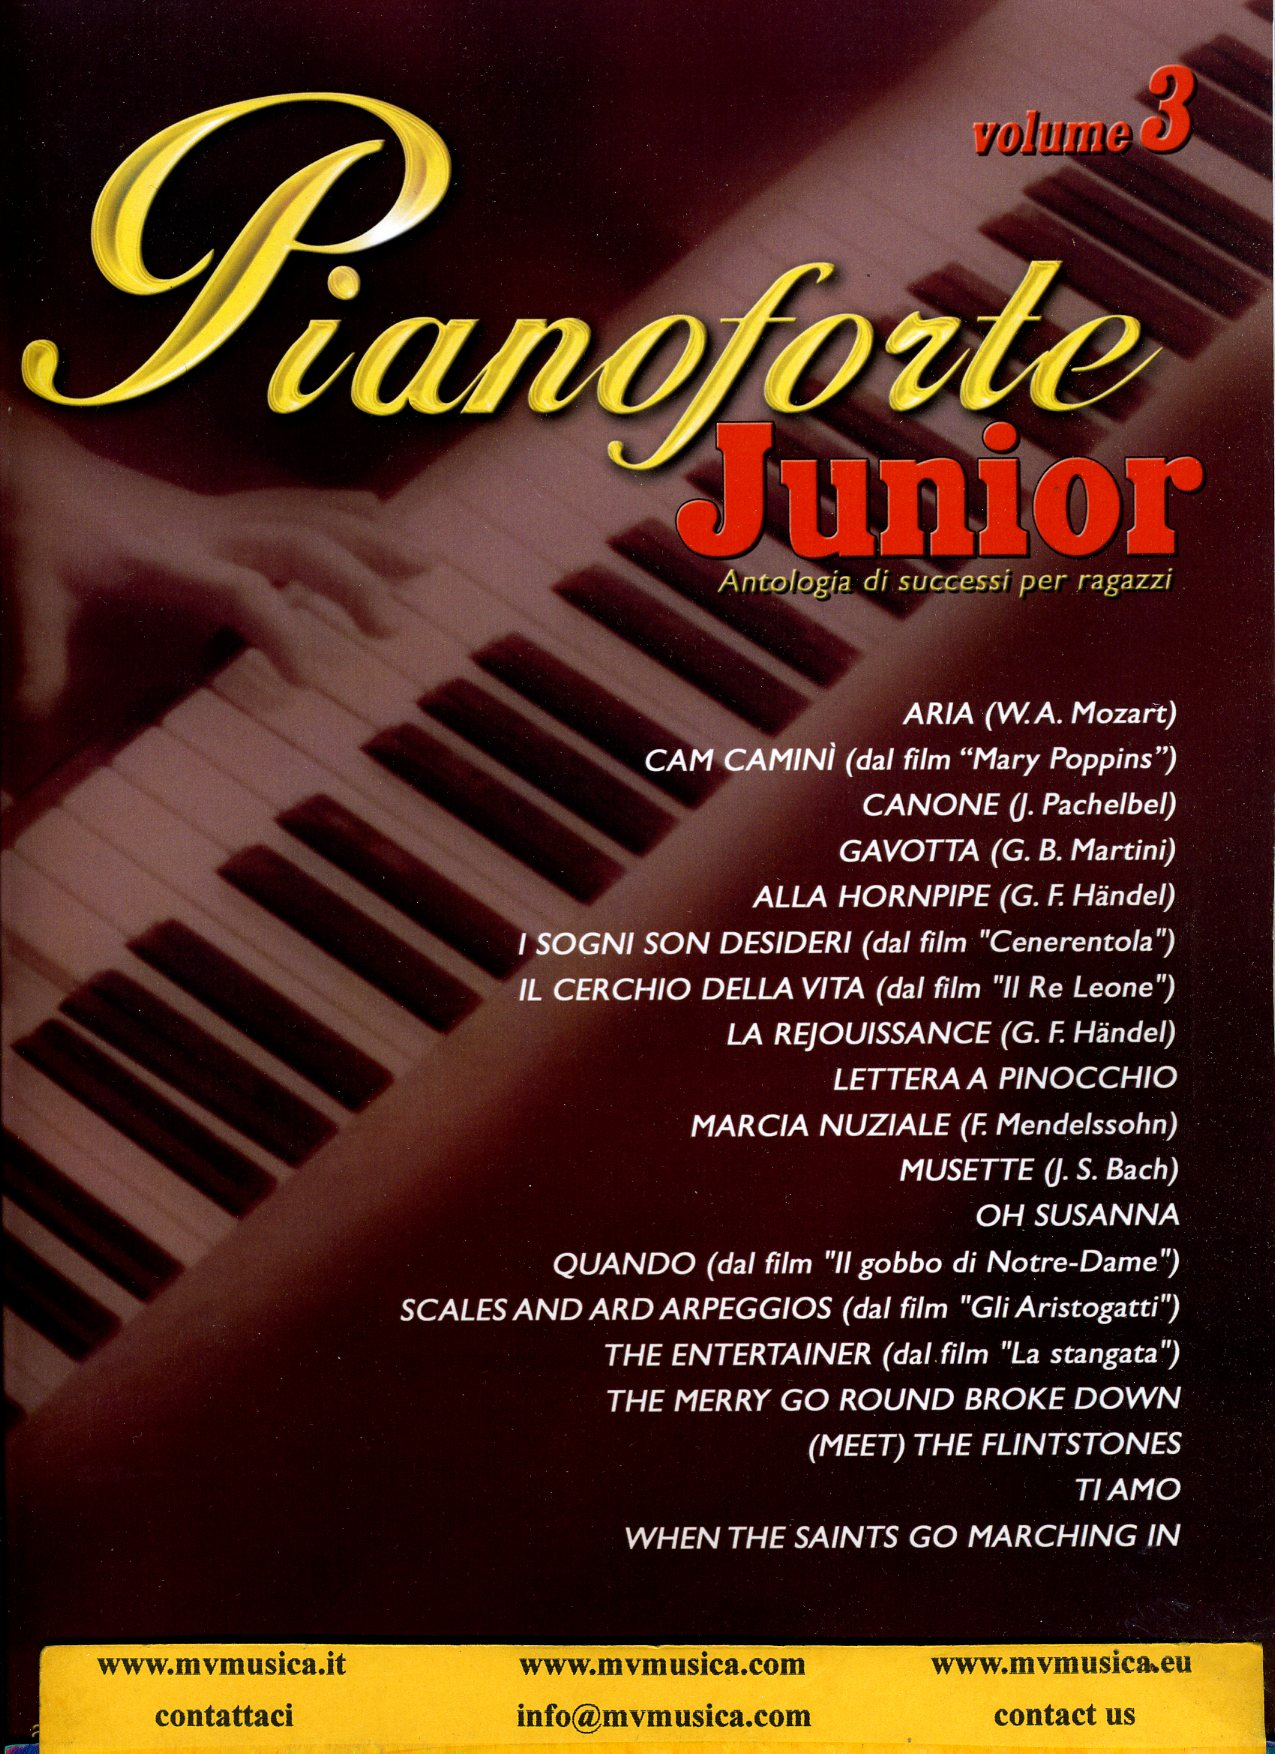 Aristogatti scale arpeggi jazz scale e arpeggi concertino for Creatore facile piano piano gratuito